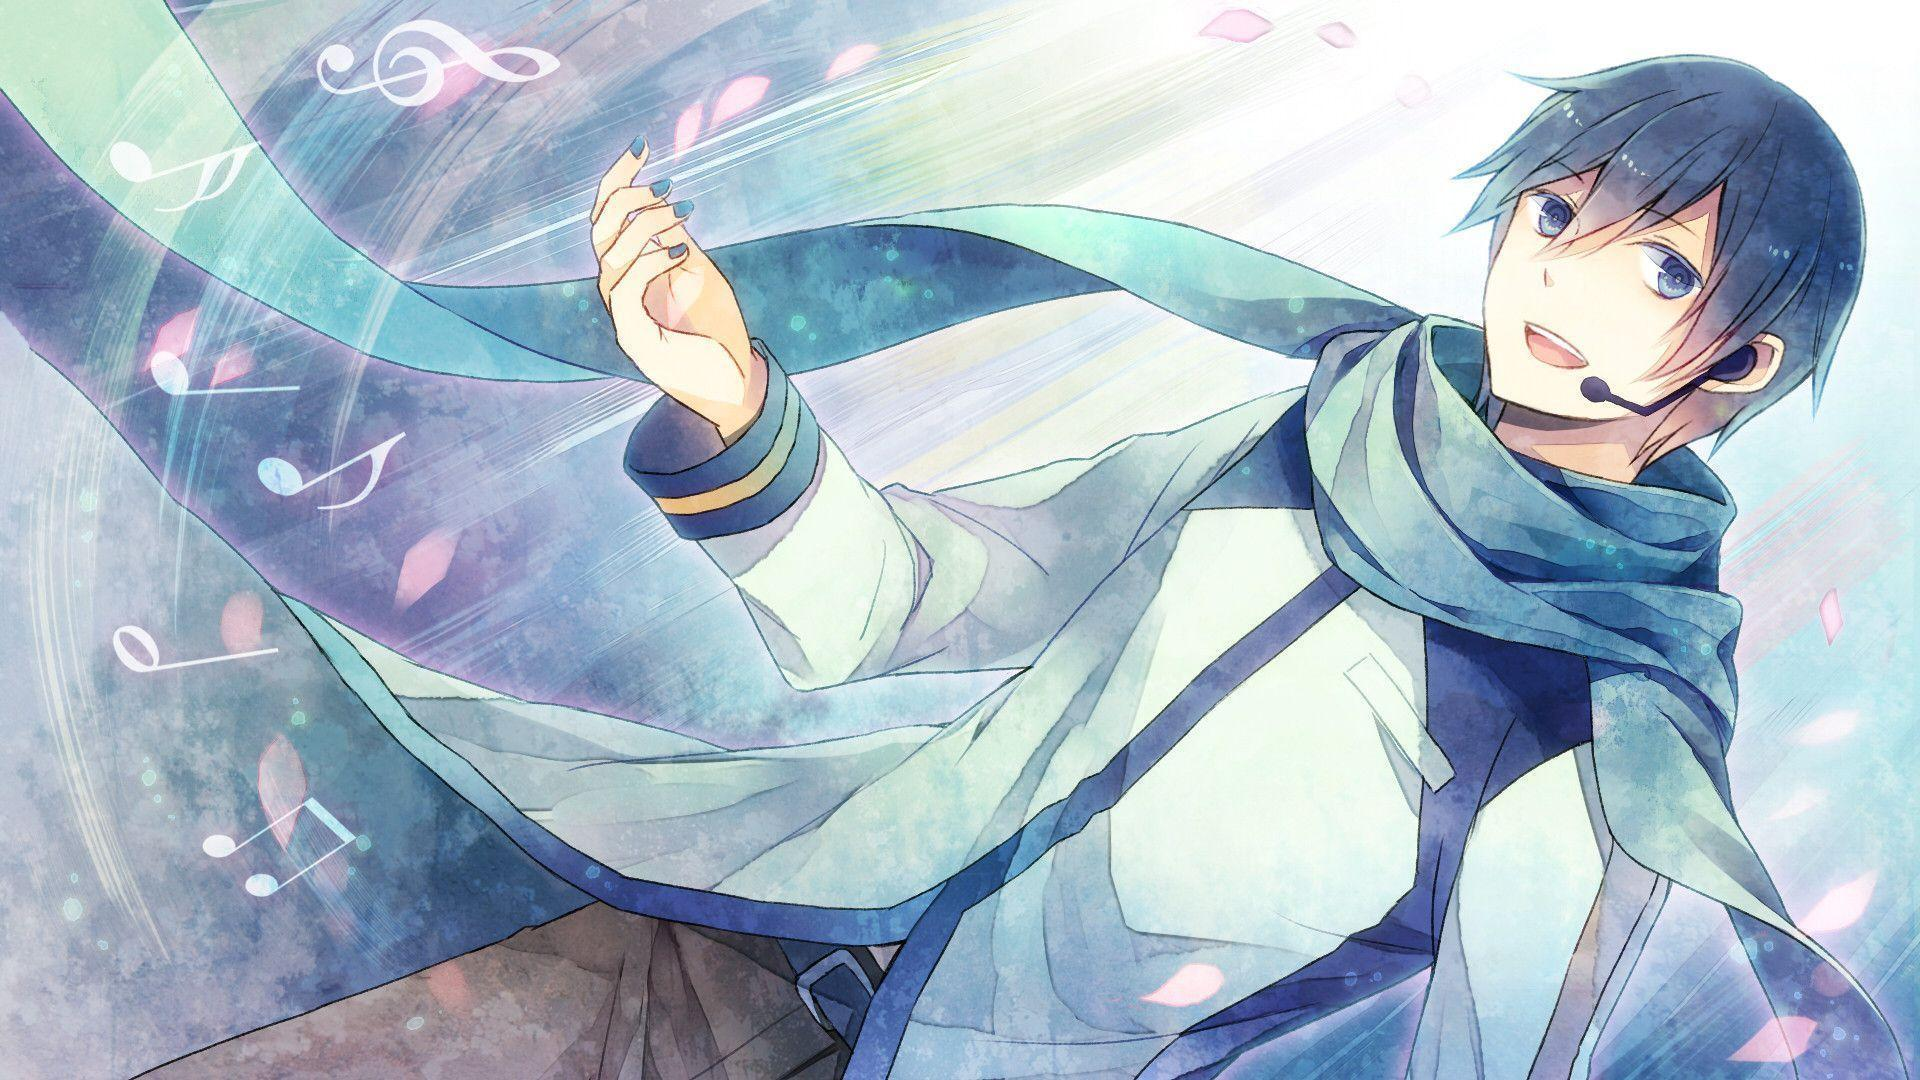 Vocaloid Kaito Wallpapers - Wallpaper Cave Vocaloid Kaito Songs